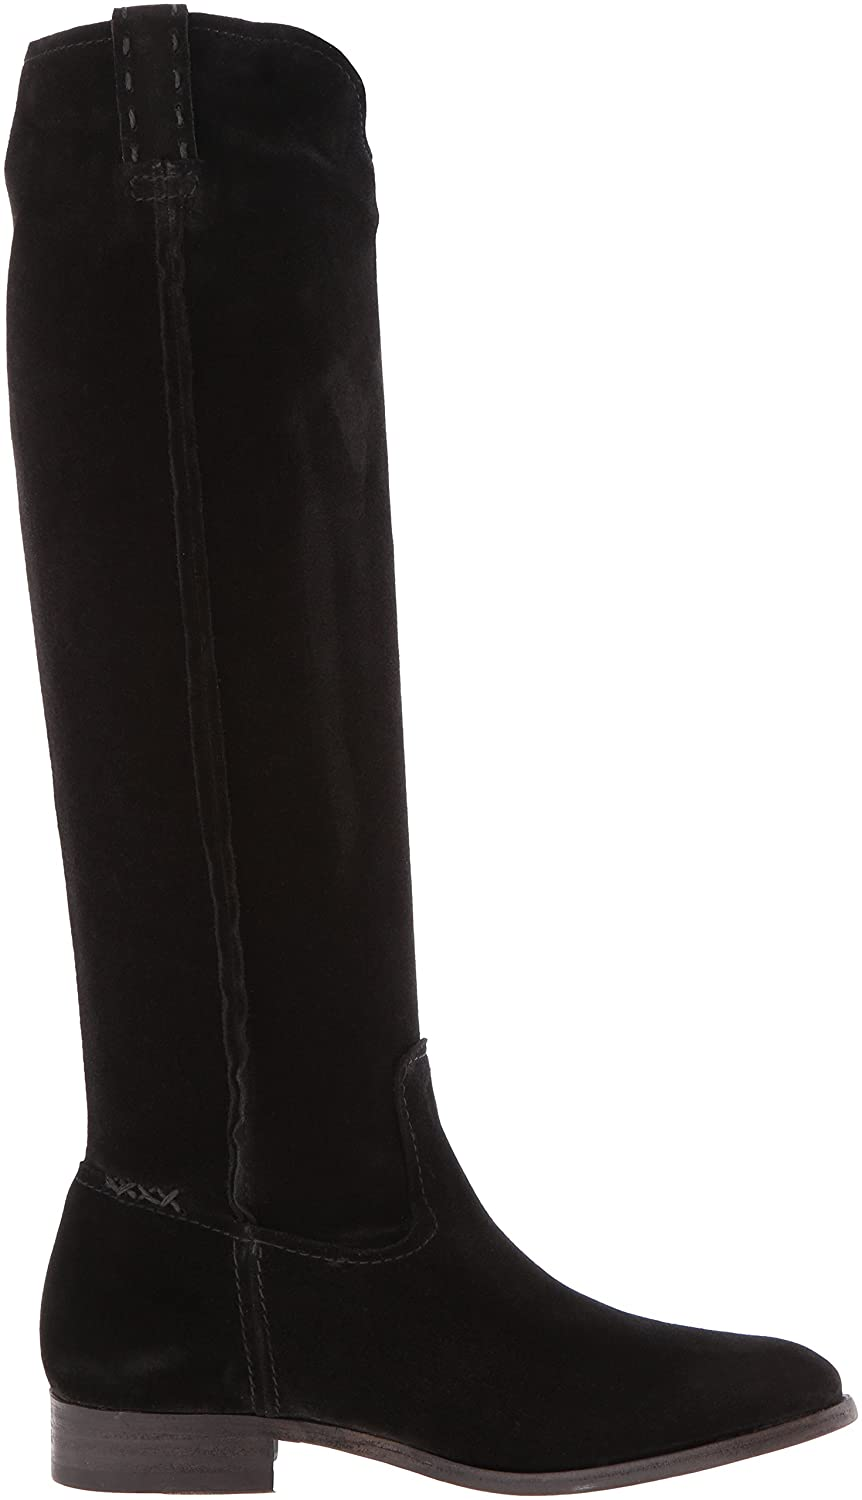 FRYE Women's Cara Tall Suede Slouch Boot B01AA8MN9W 6 B(M) US|Black